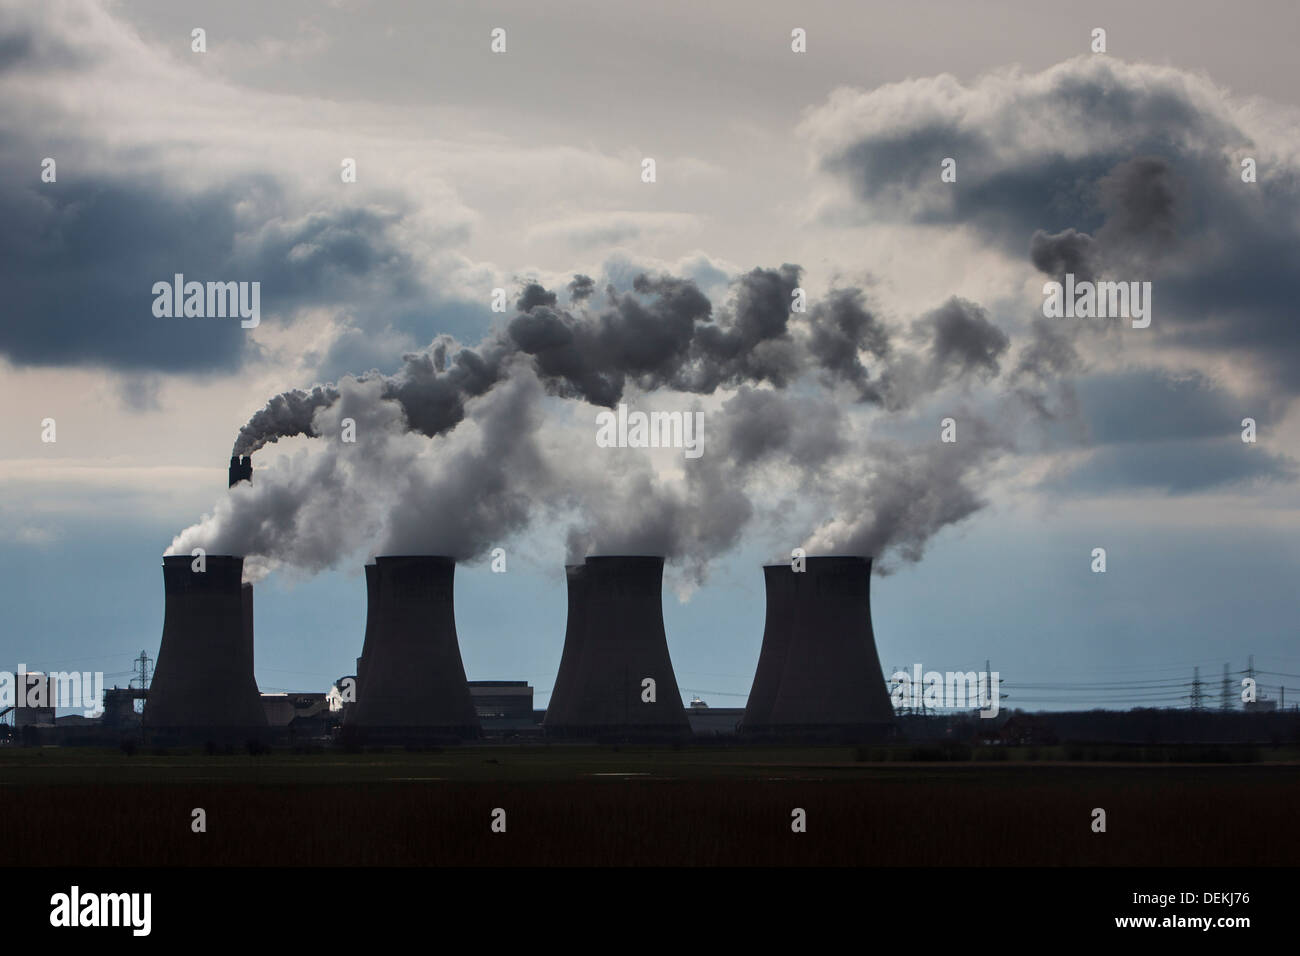 Smoke and steam bellows from the chimneys and cooling towers of Ratcliffe-on-Soar power station - Stock Image